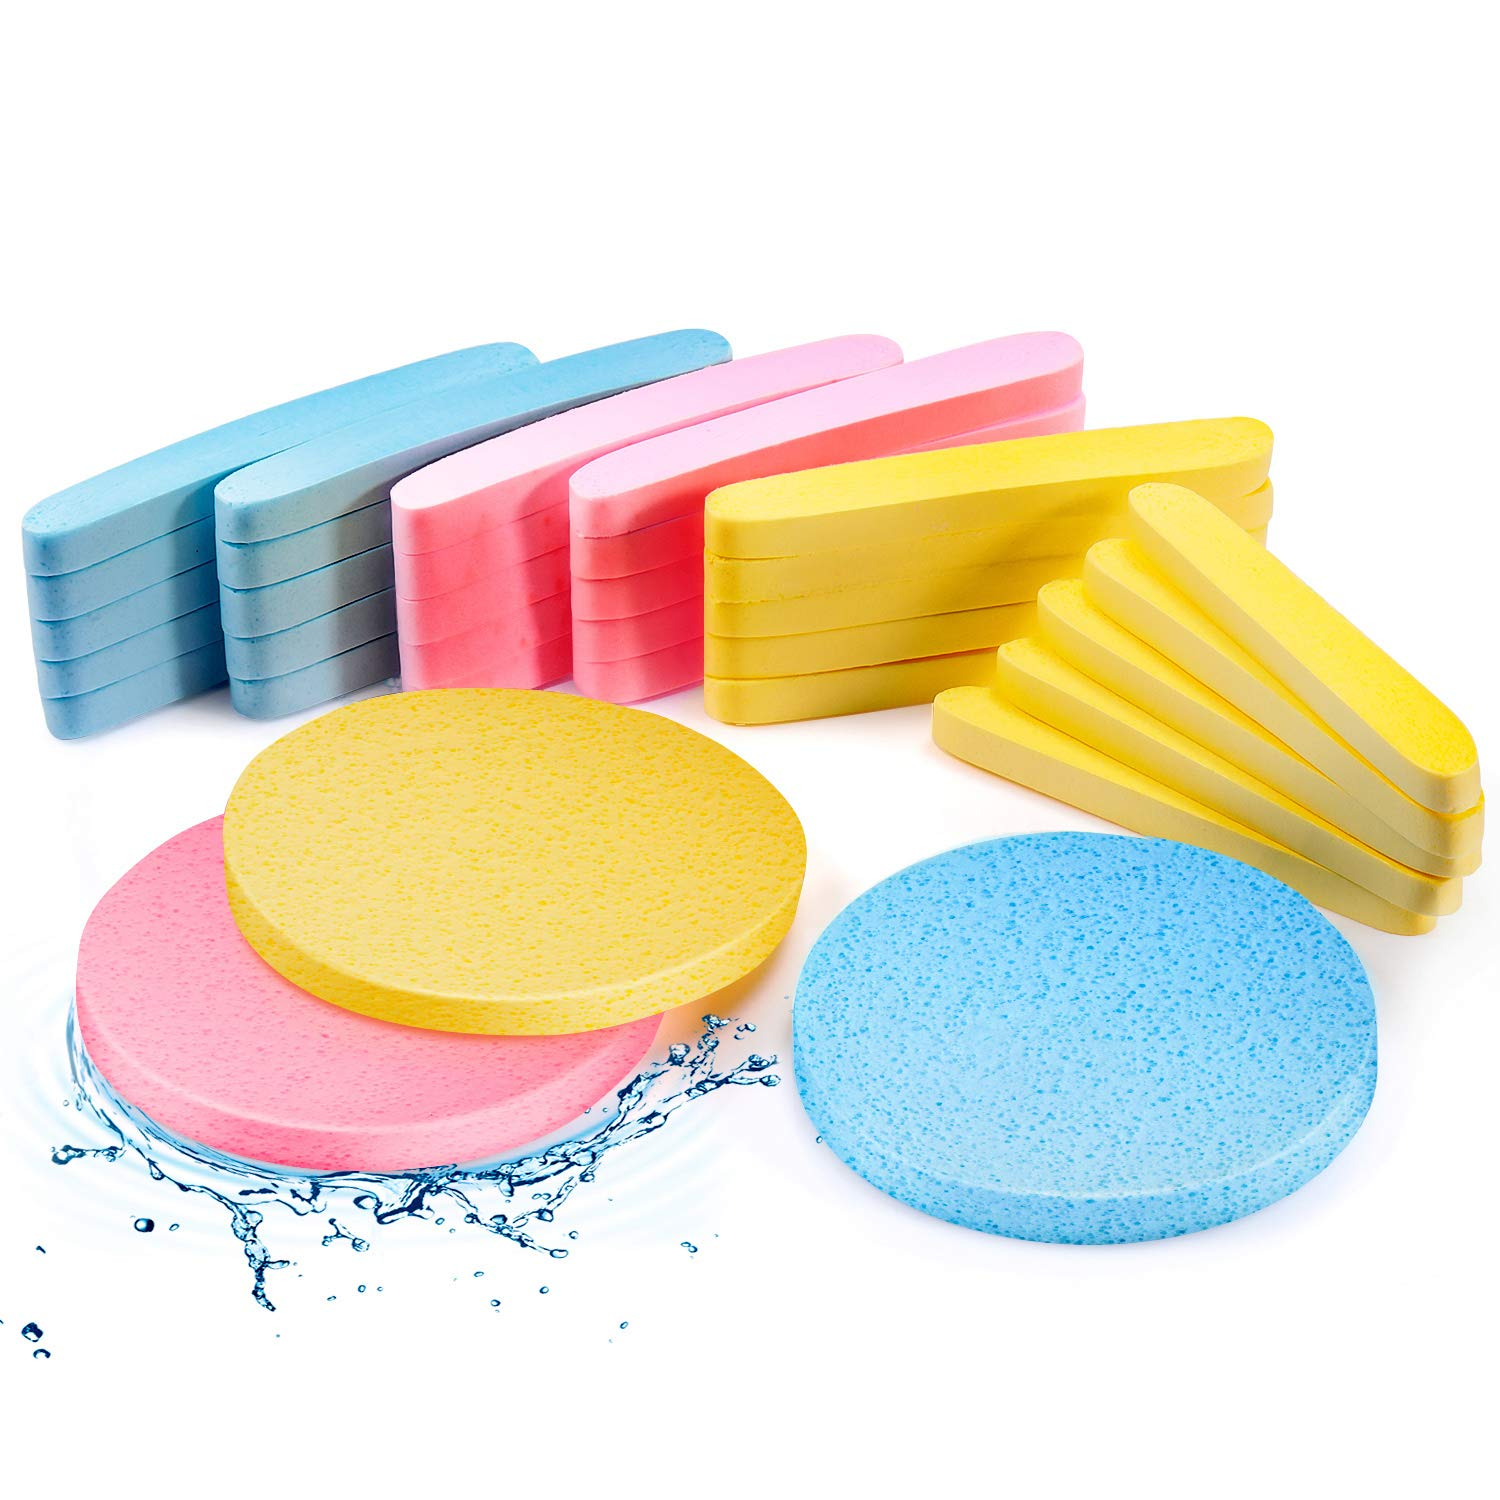 120 Pieces Compressed Facial Sponge Face Cleansing Sponge Makeup Removal Sponge Pad Exfoliating Wash Round Face Sponge for Women Girls, Pink, Yellow, Blue : Beauty